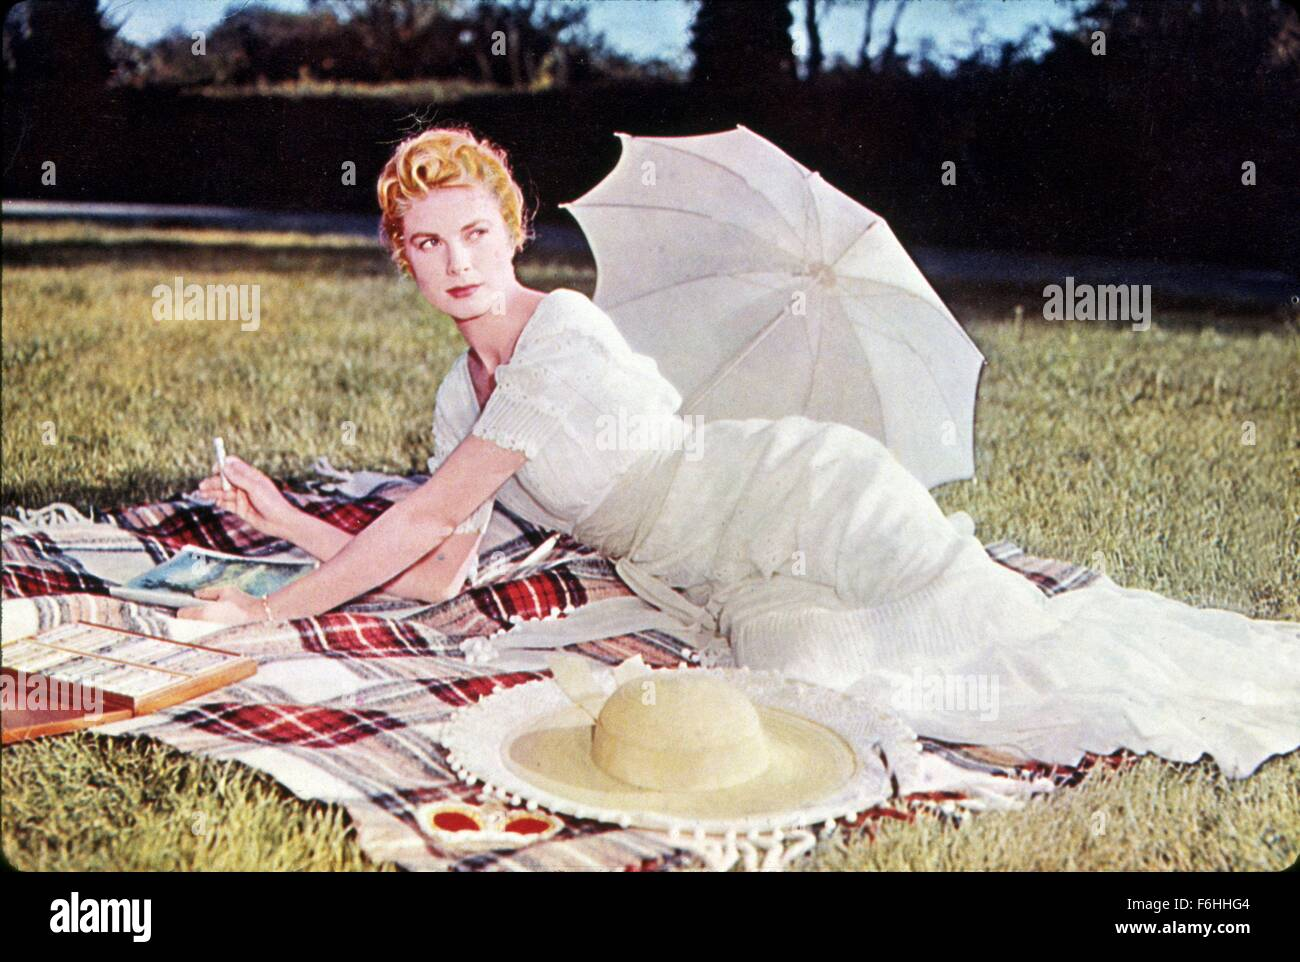 1956, Film Title: SWAN, Director: CHARLES VIDOR, Studio: MGM, Pictured: GRACE KELLY. (Credit Image: SNAP) - Stock Image